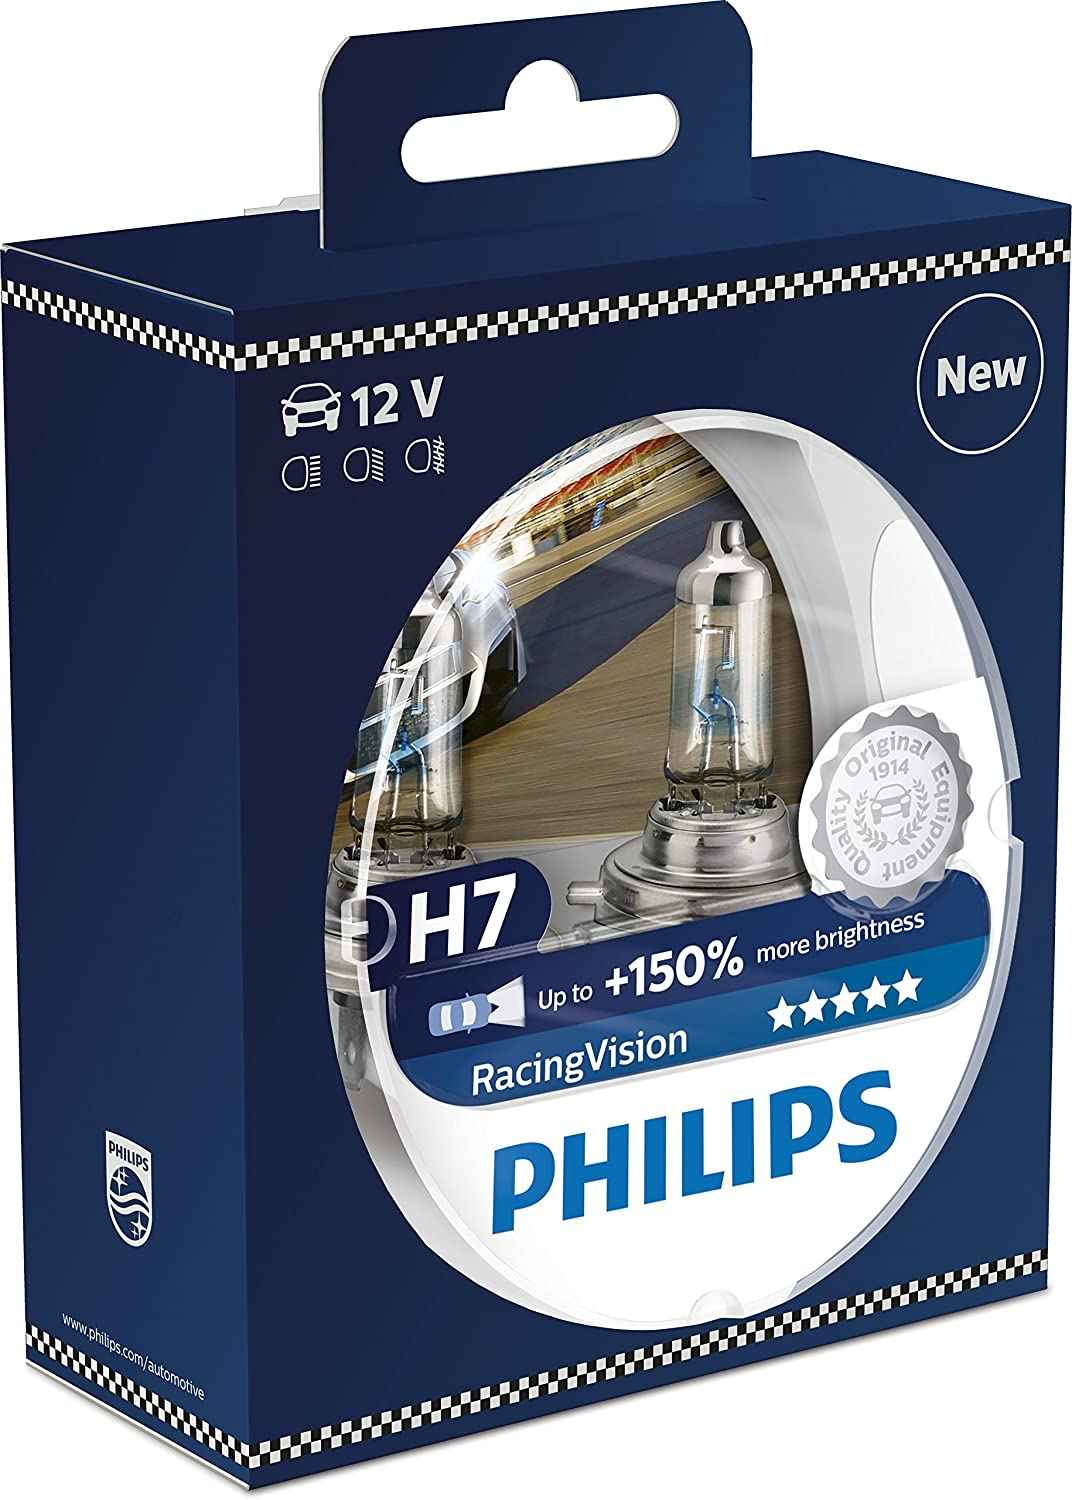 Philips racingvision 150 h7 headlight bulb 12972rvs2 twin pack amazon co uk car motorbike